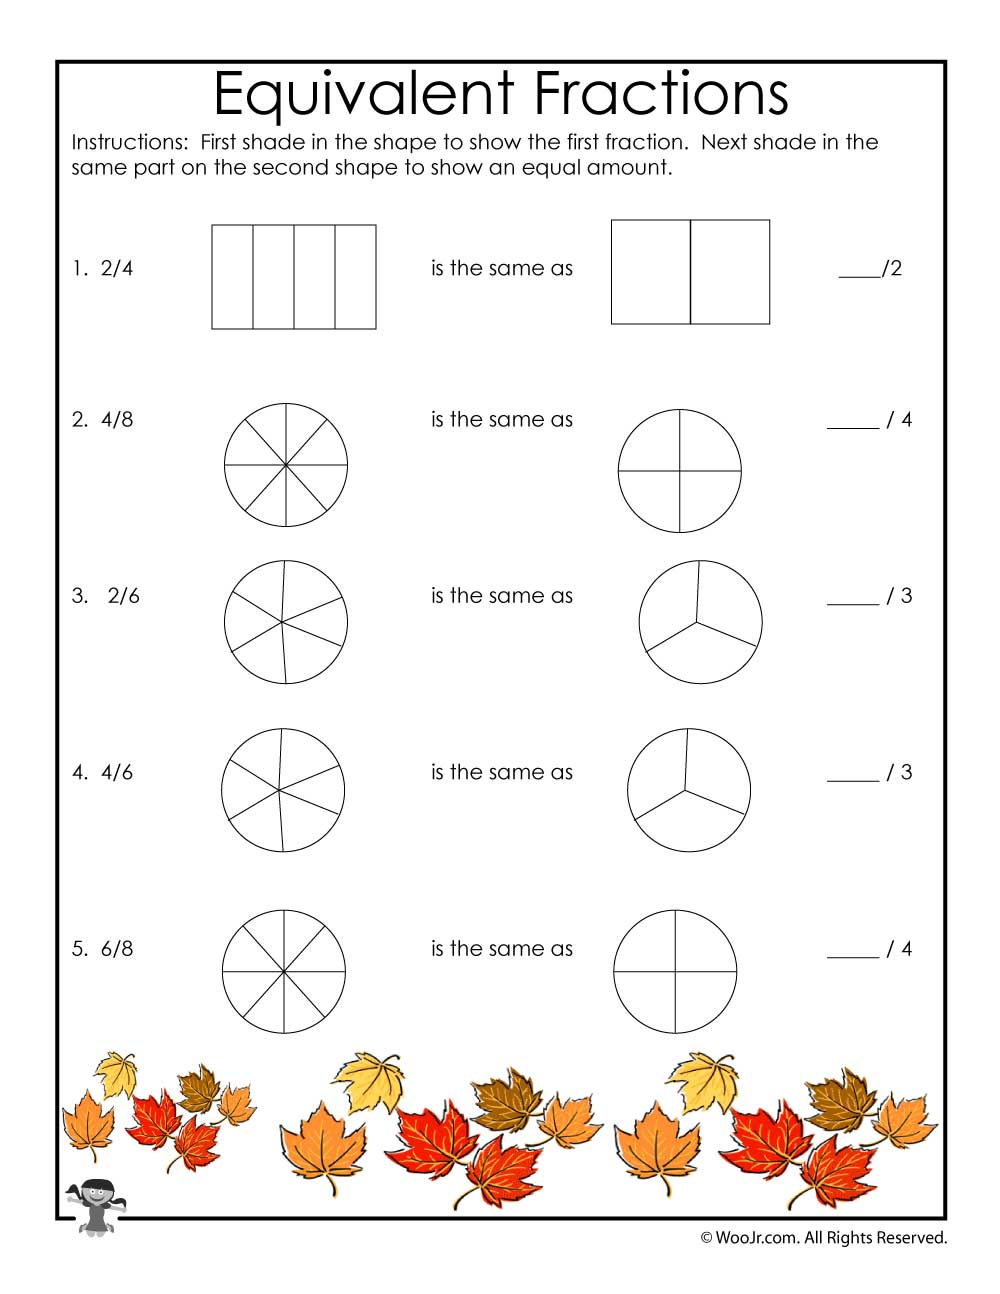 hight resolution of Fall Equivalent Fractions Worksheet   Woo! Jr. Kids Activities